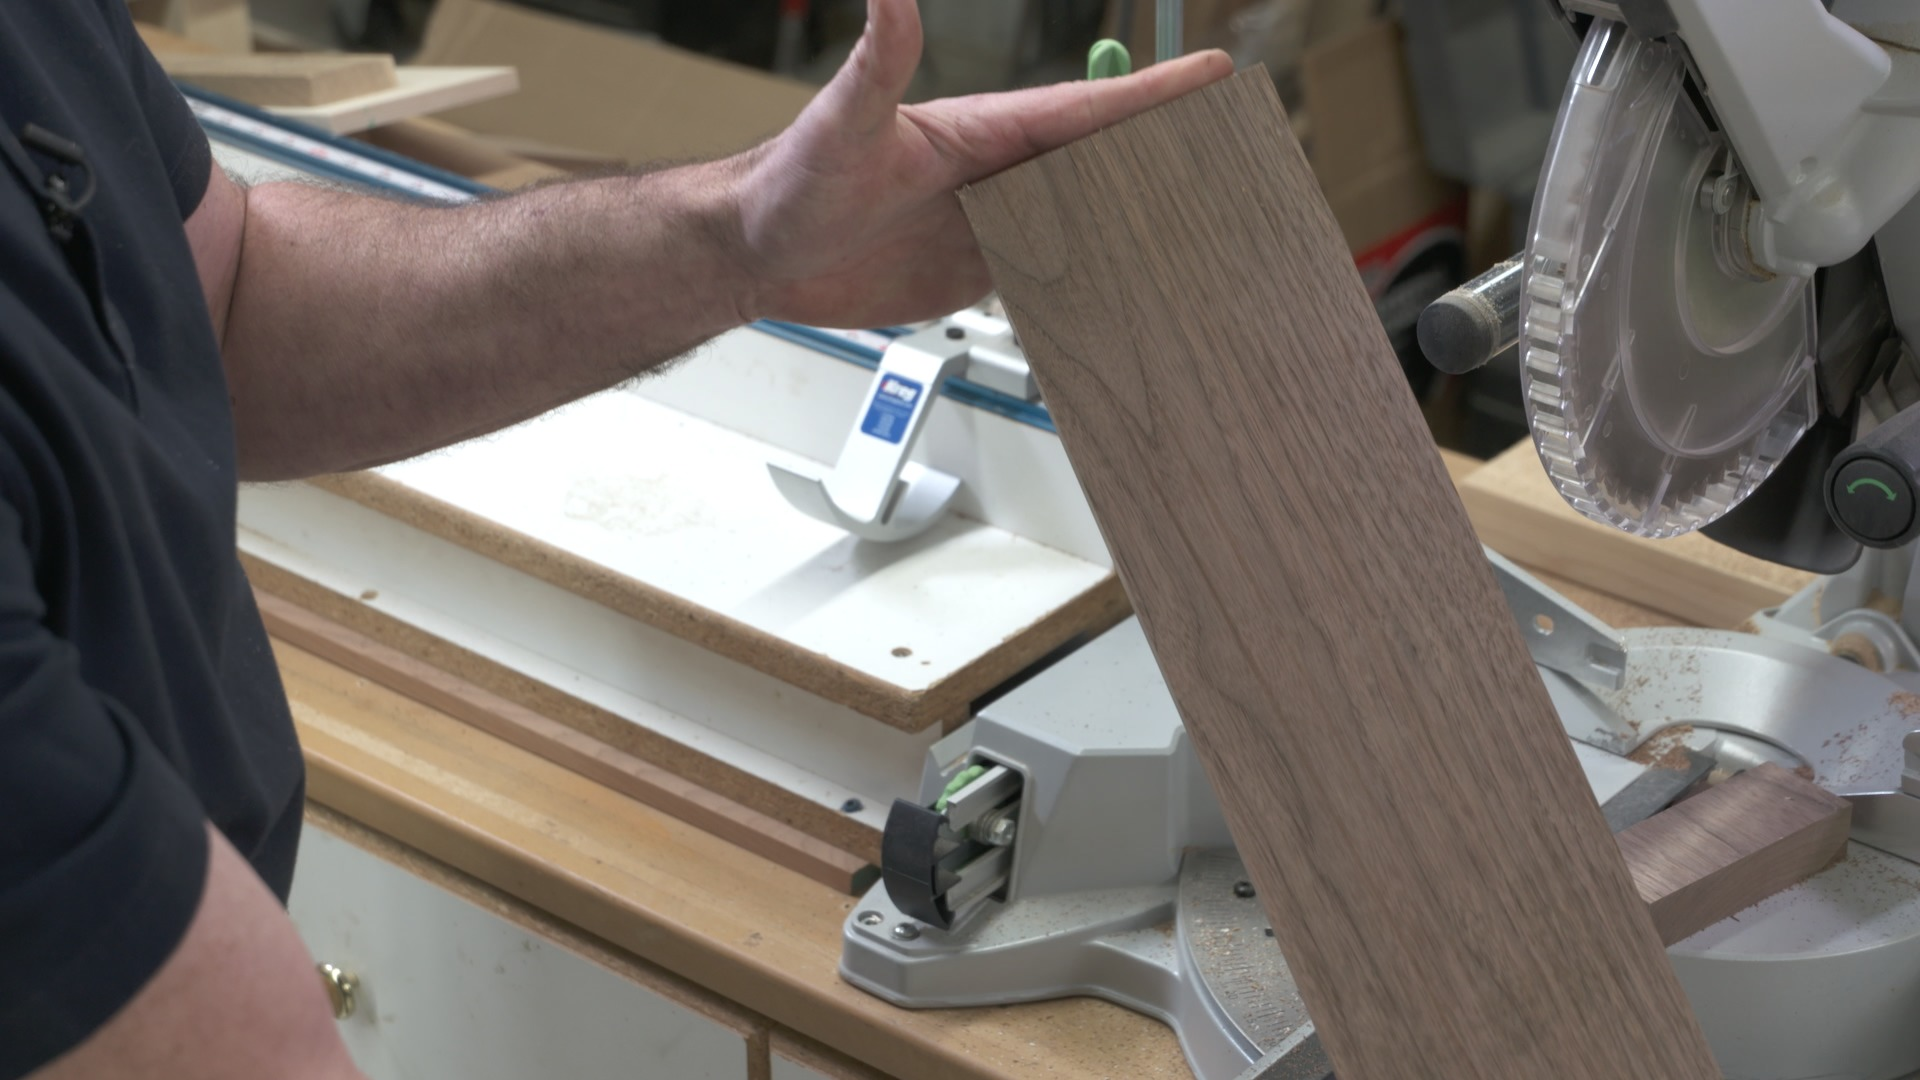 Sharpen Your Skills - Post Haste Project: How to Square a Board